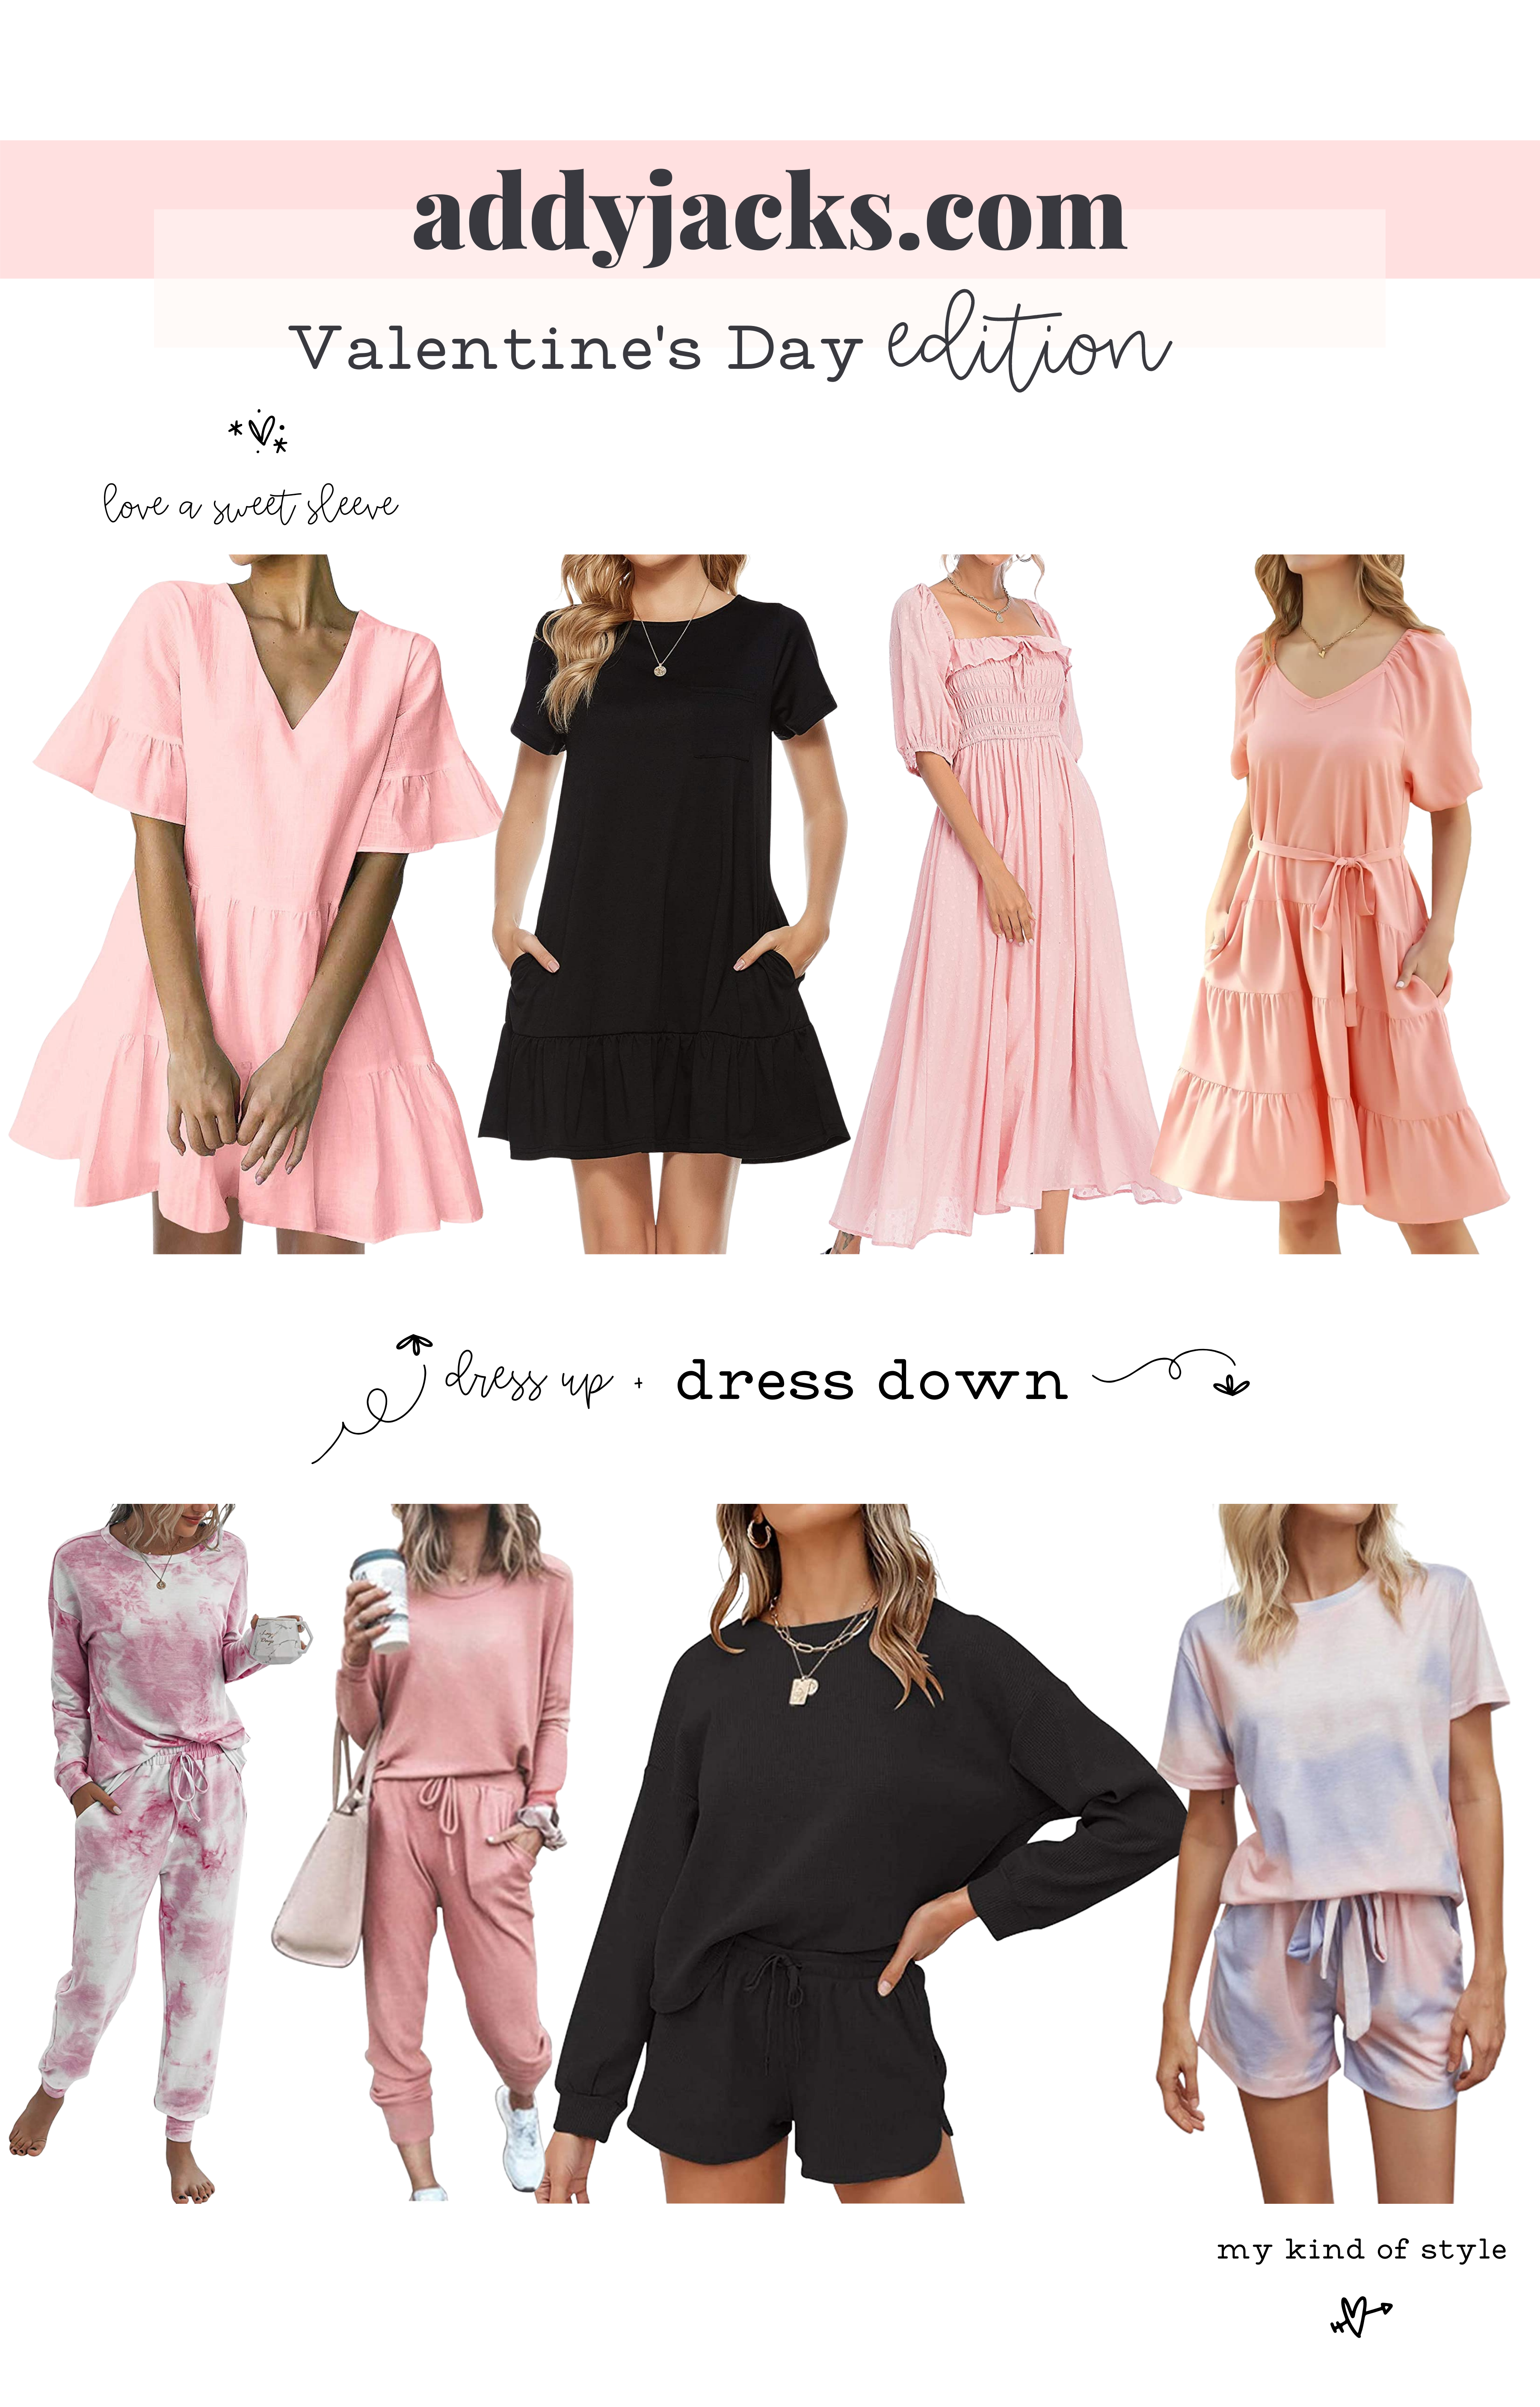 8 valentine's day outfit ideas to wear from home